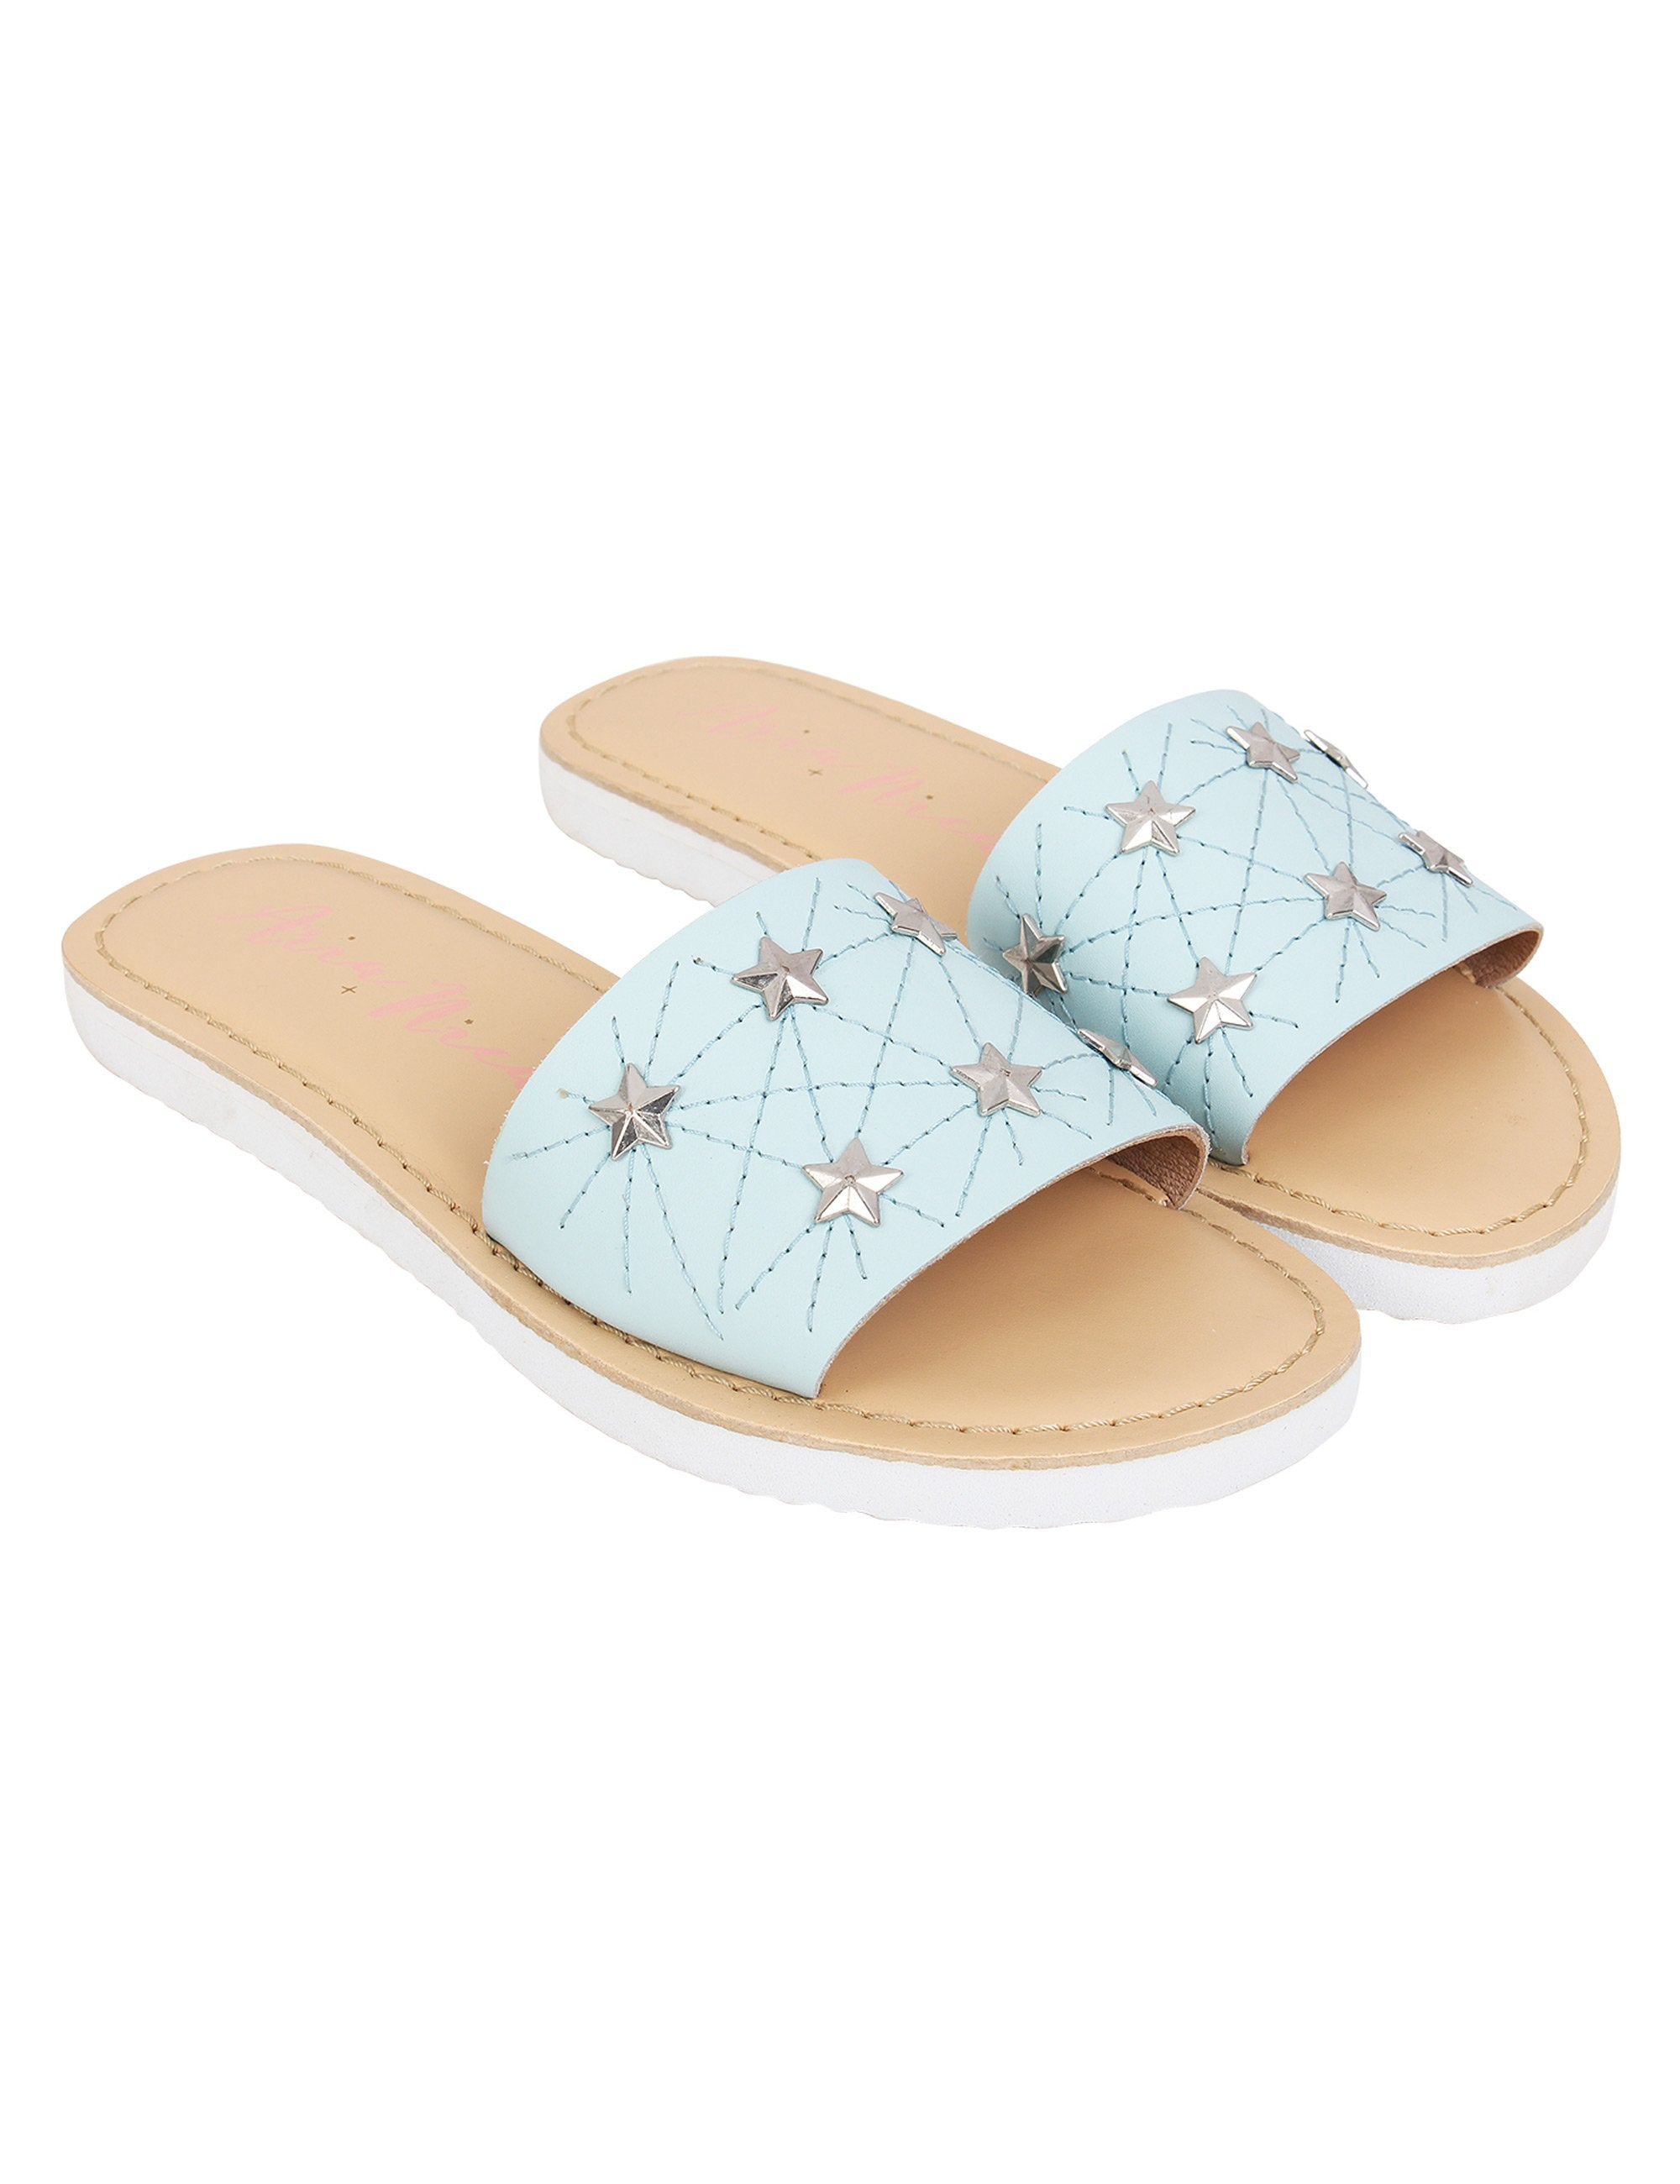 Star Flats for Girls in Blue Colour